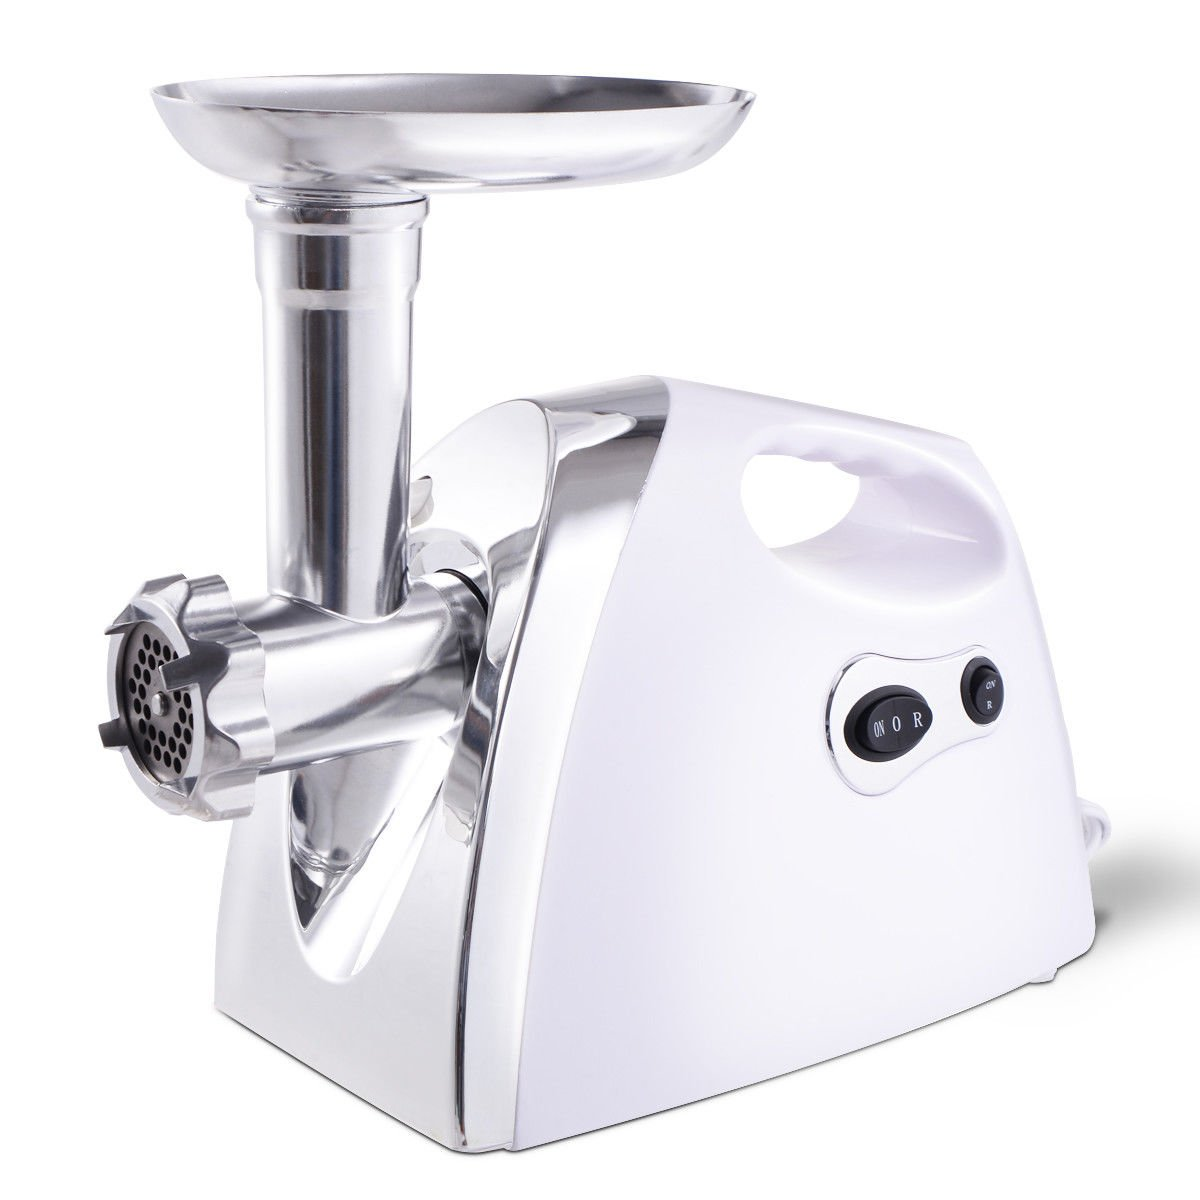 Giantex 2800W Electric Meat Grinder Sausage Stuffer Maker Stainless Cutter Home KC41254